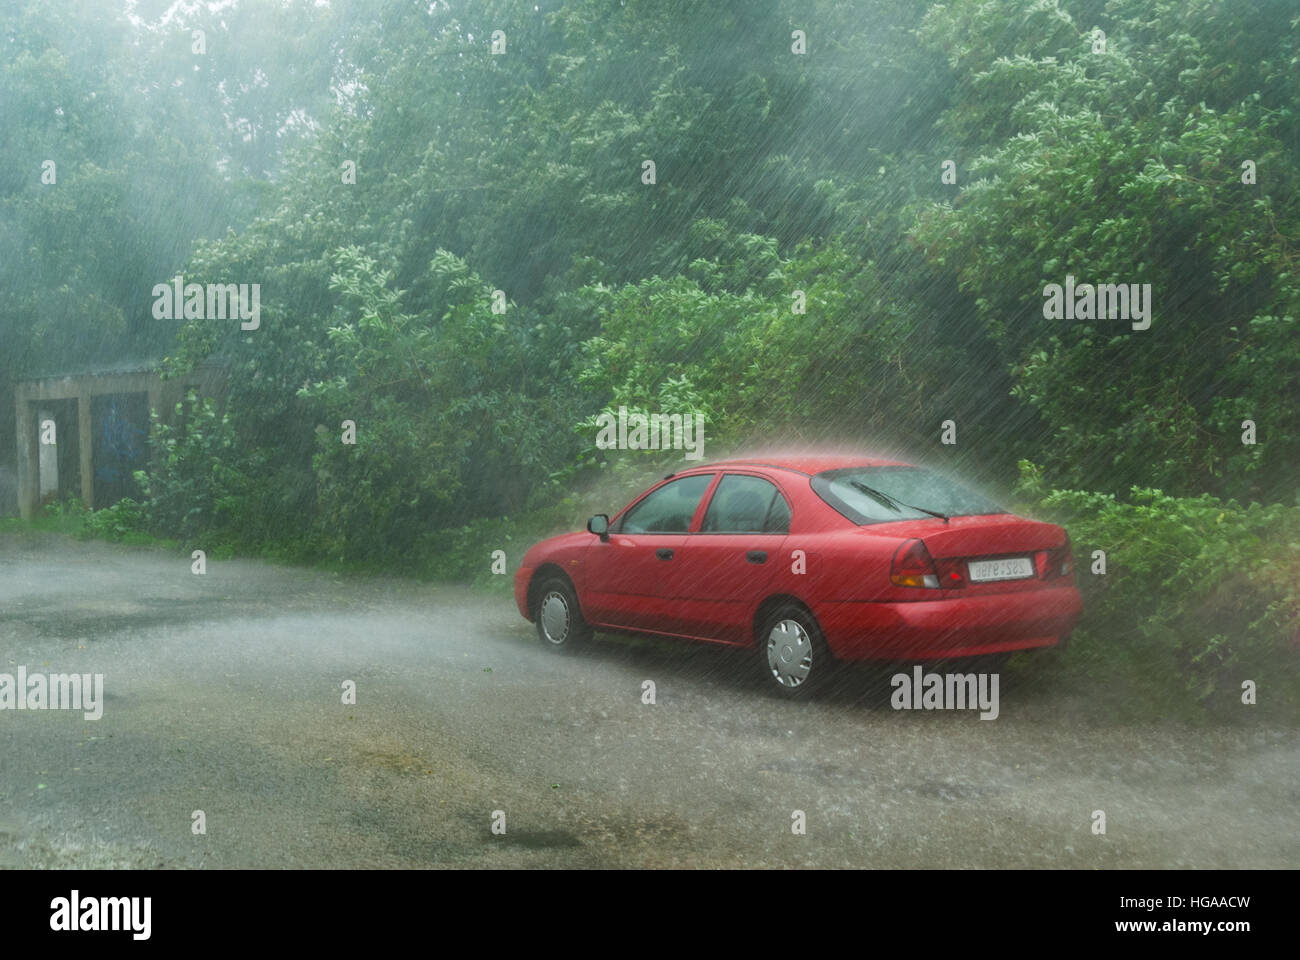 Parked red car in rural forest road area in heavy storm rain - Stock Image